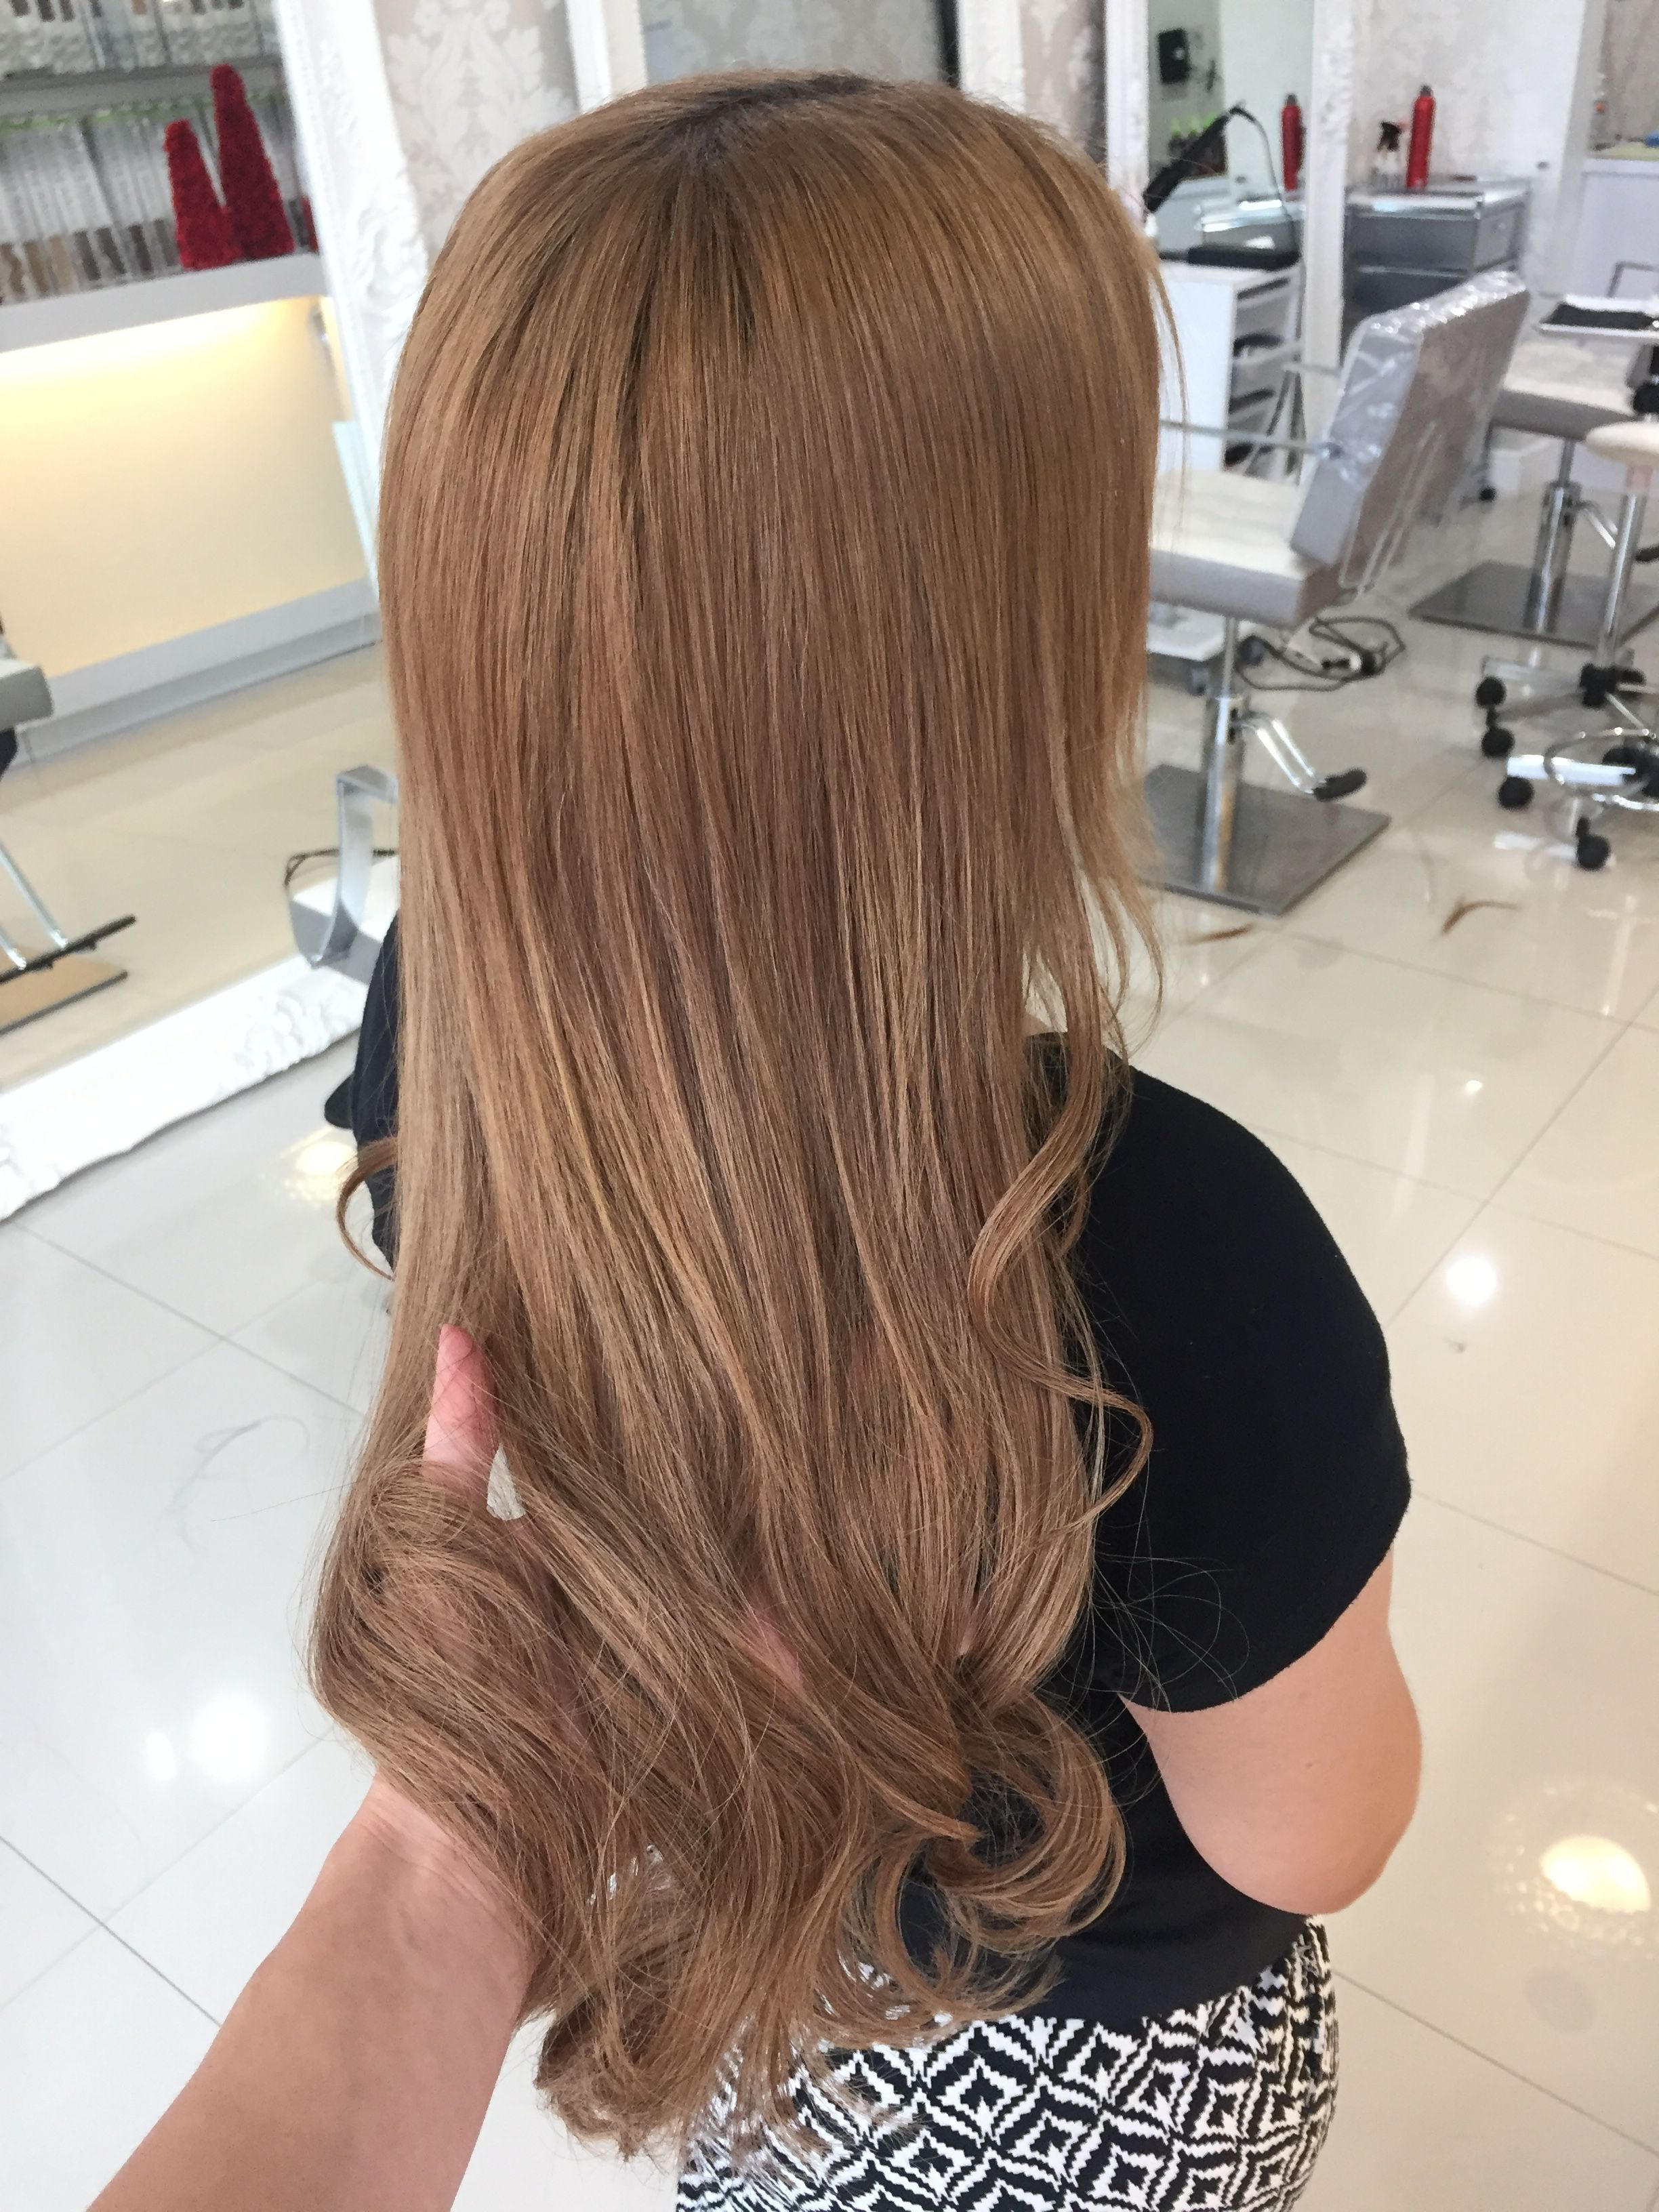 Long beautiful hair hair extensions gallery from beauty locks in long beautiful hair hair extensions gallery from beauty locks in miami beach pmusecretfo Image collections